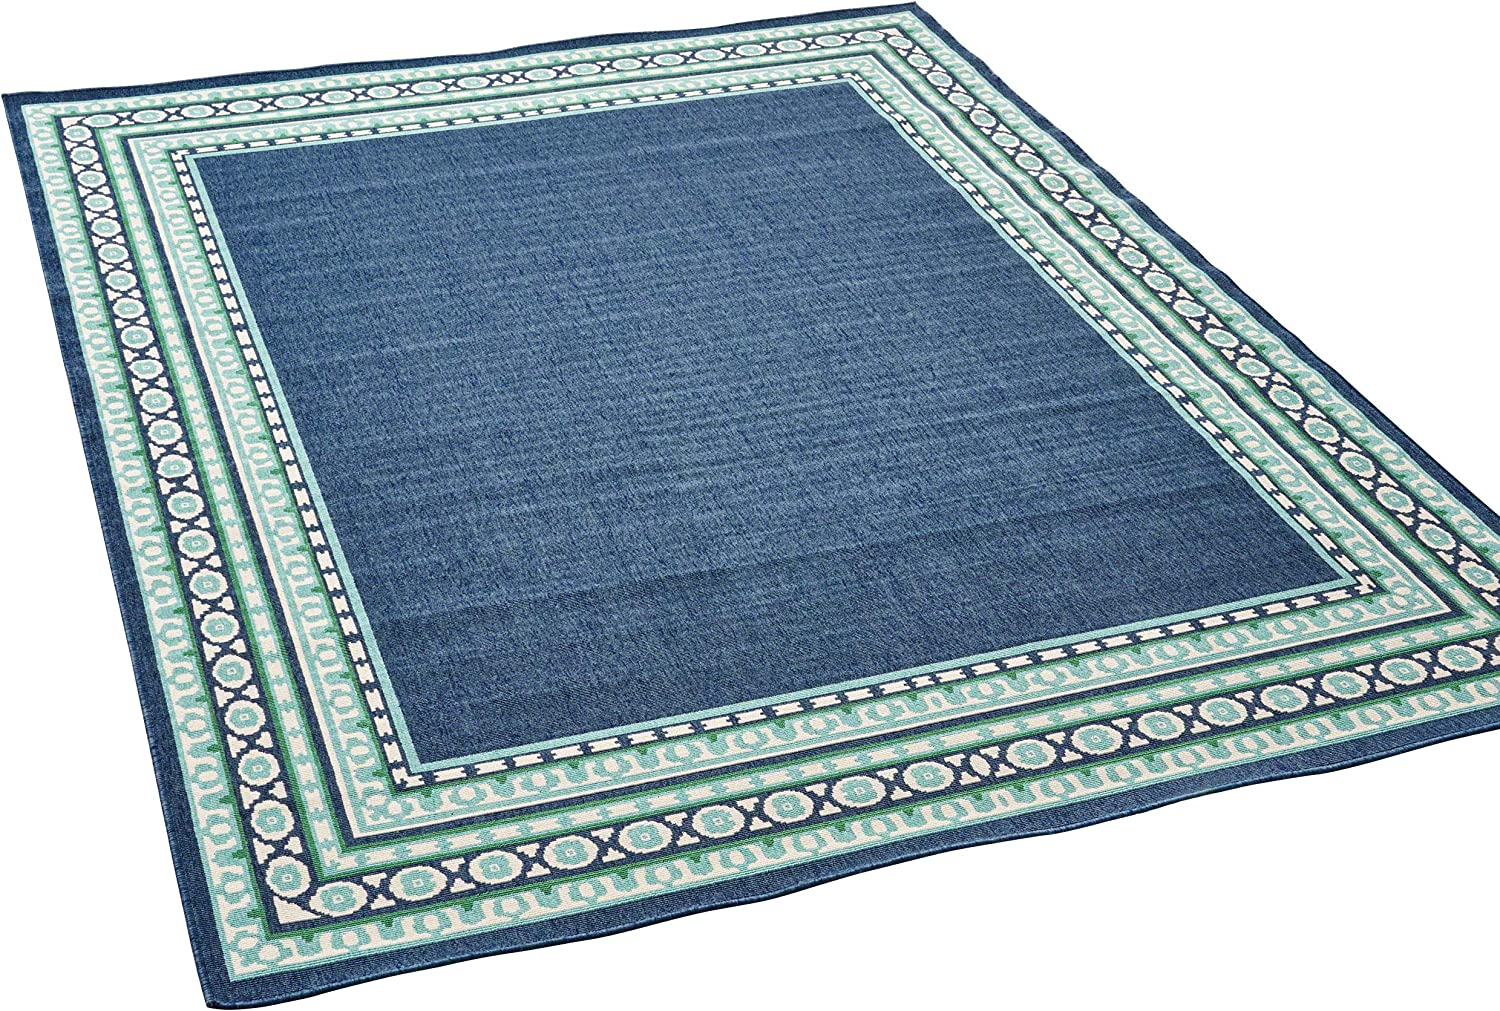 Christopher Knight Home Darleen Outdoor Border 5 x 8 Area Rug, Navy/Green